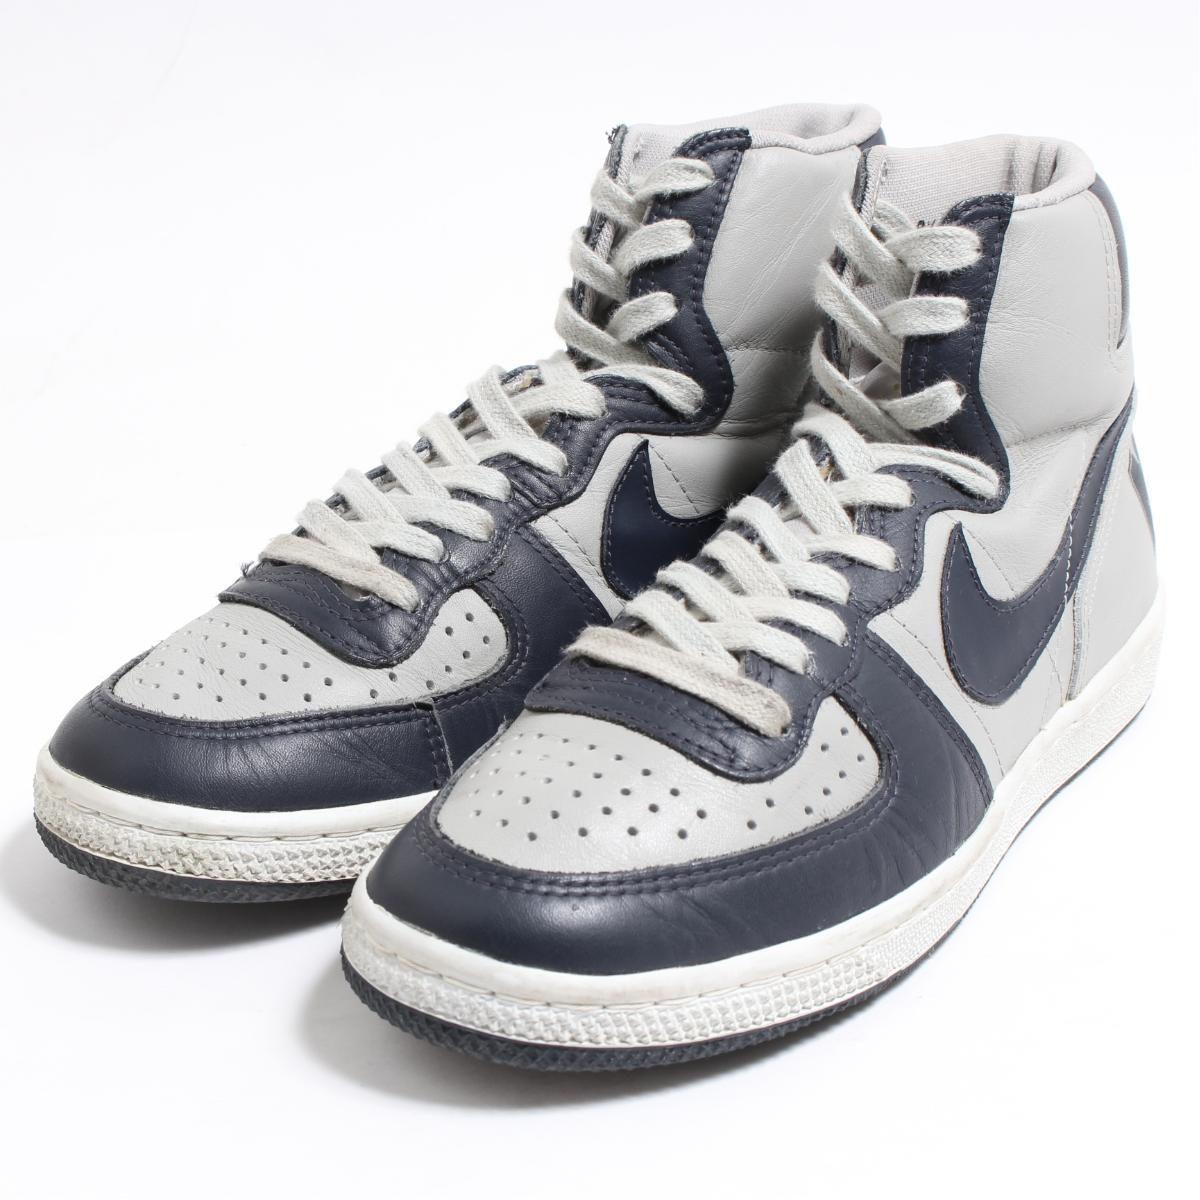 regarder cf8a5 f7e57 US8 .5 men's 26.5cm vintage /boo3644 in the 80s made in Nike NIKE  TERMINATOR HIGH terminator sneakers Korea